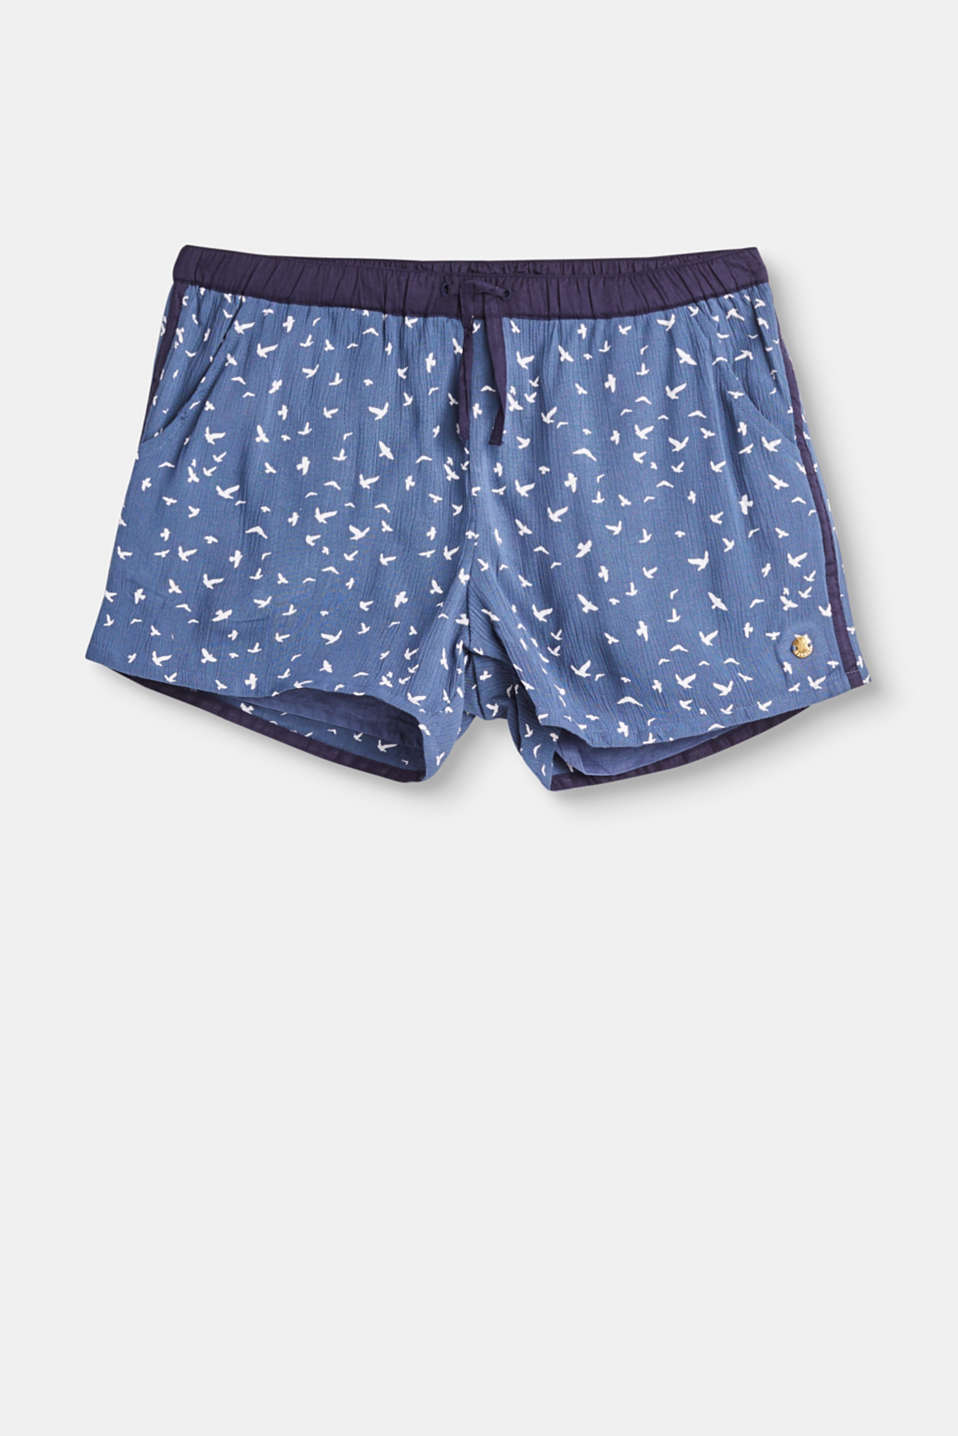 Esprit - Flowing shorts with an all-over print